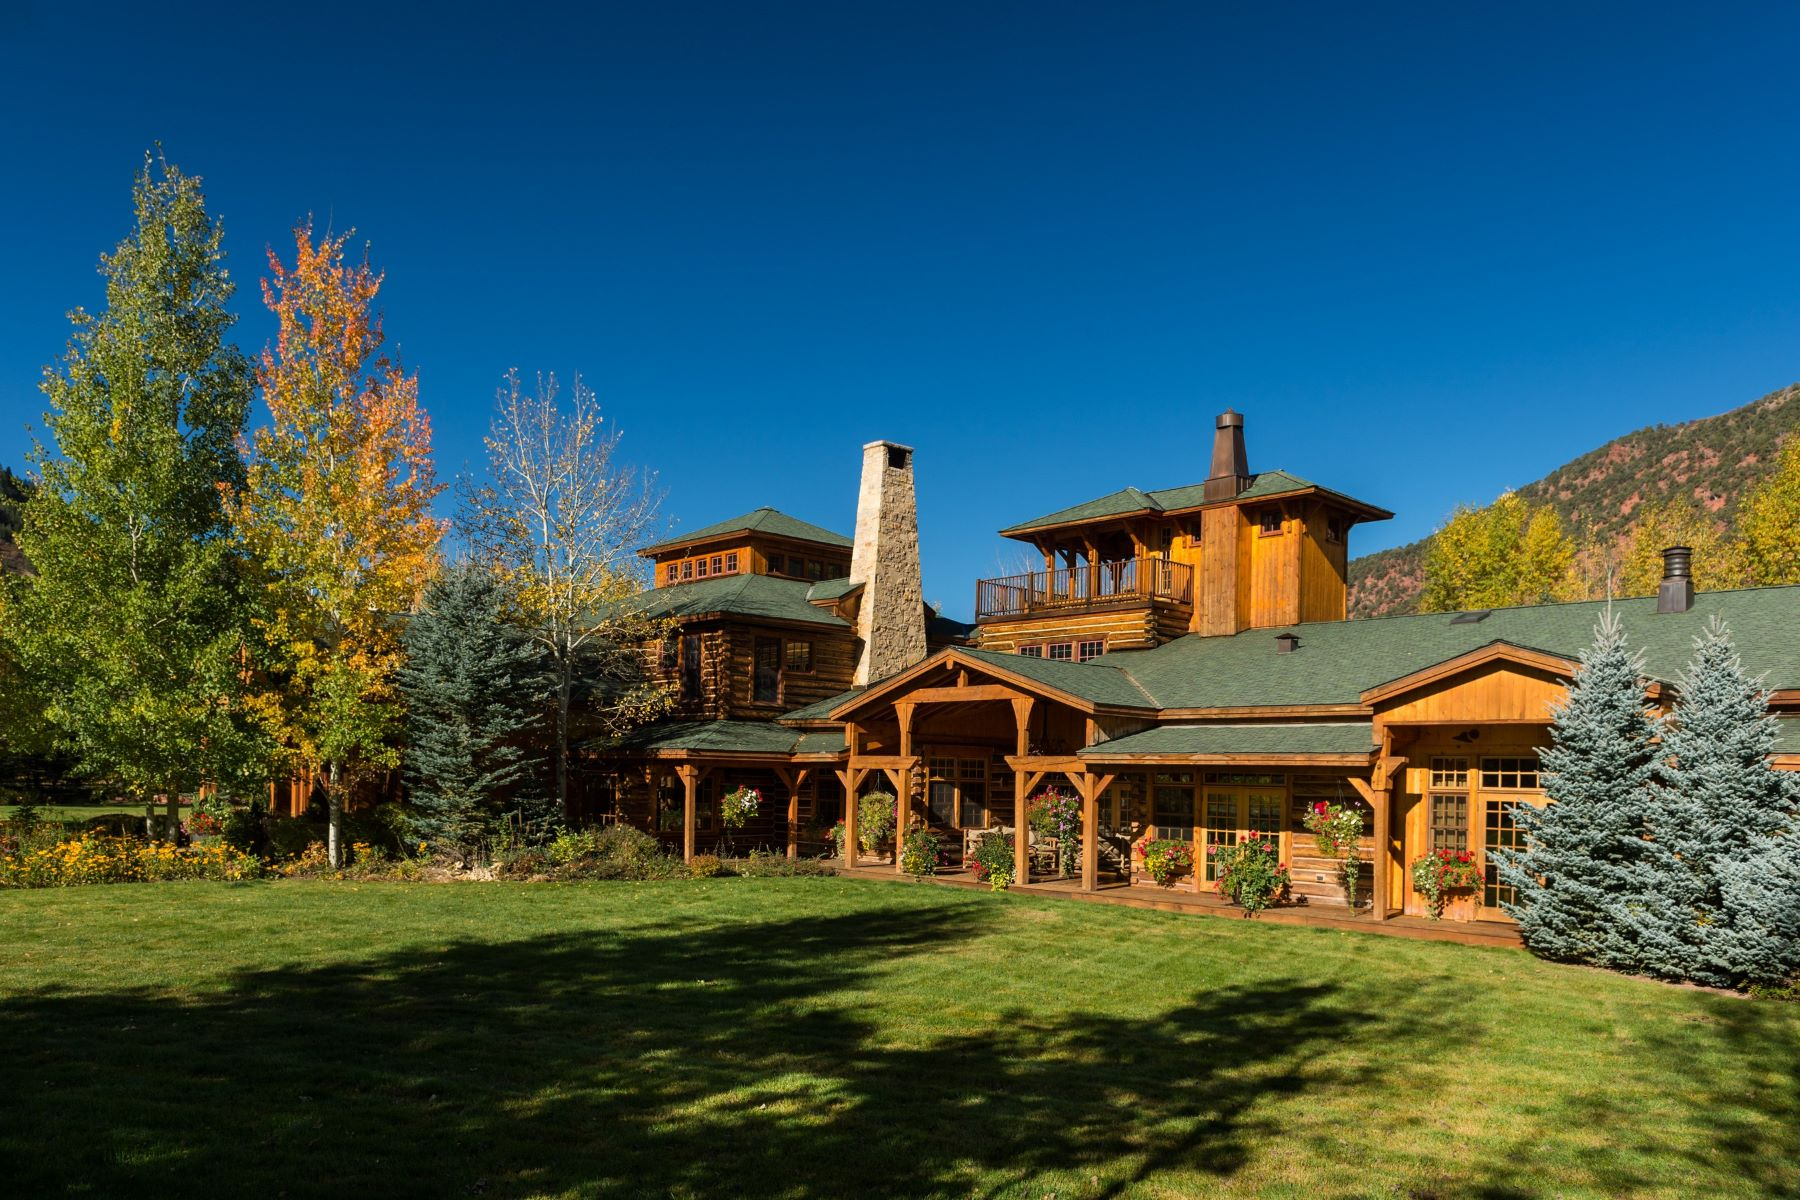 Single Family Home for Sale at Meanwhile Ranch 1621 Lower River Rd Snowmass, Colorado 81654 United States